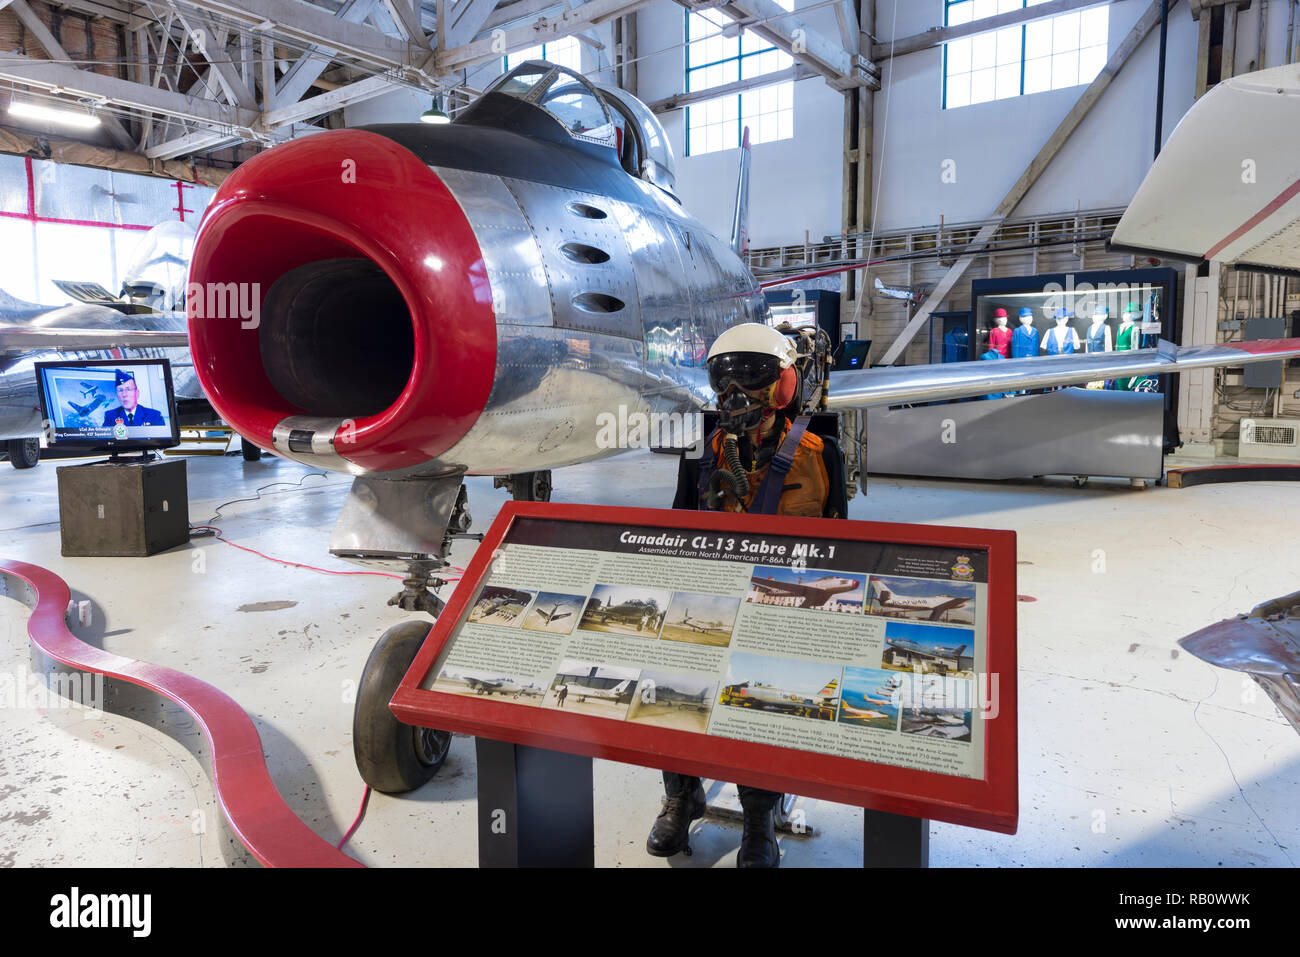 Canadair CL-13 Sabre MK.1 at the Edmonton Aviation Museum - Stock Image